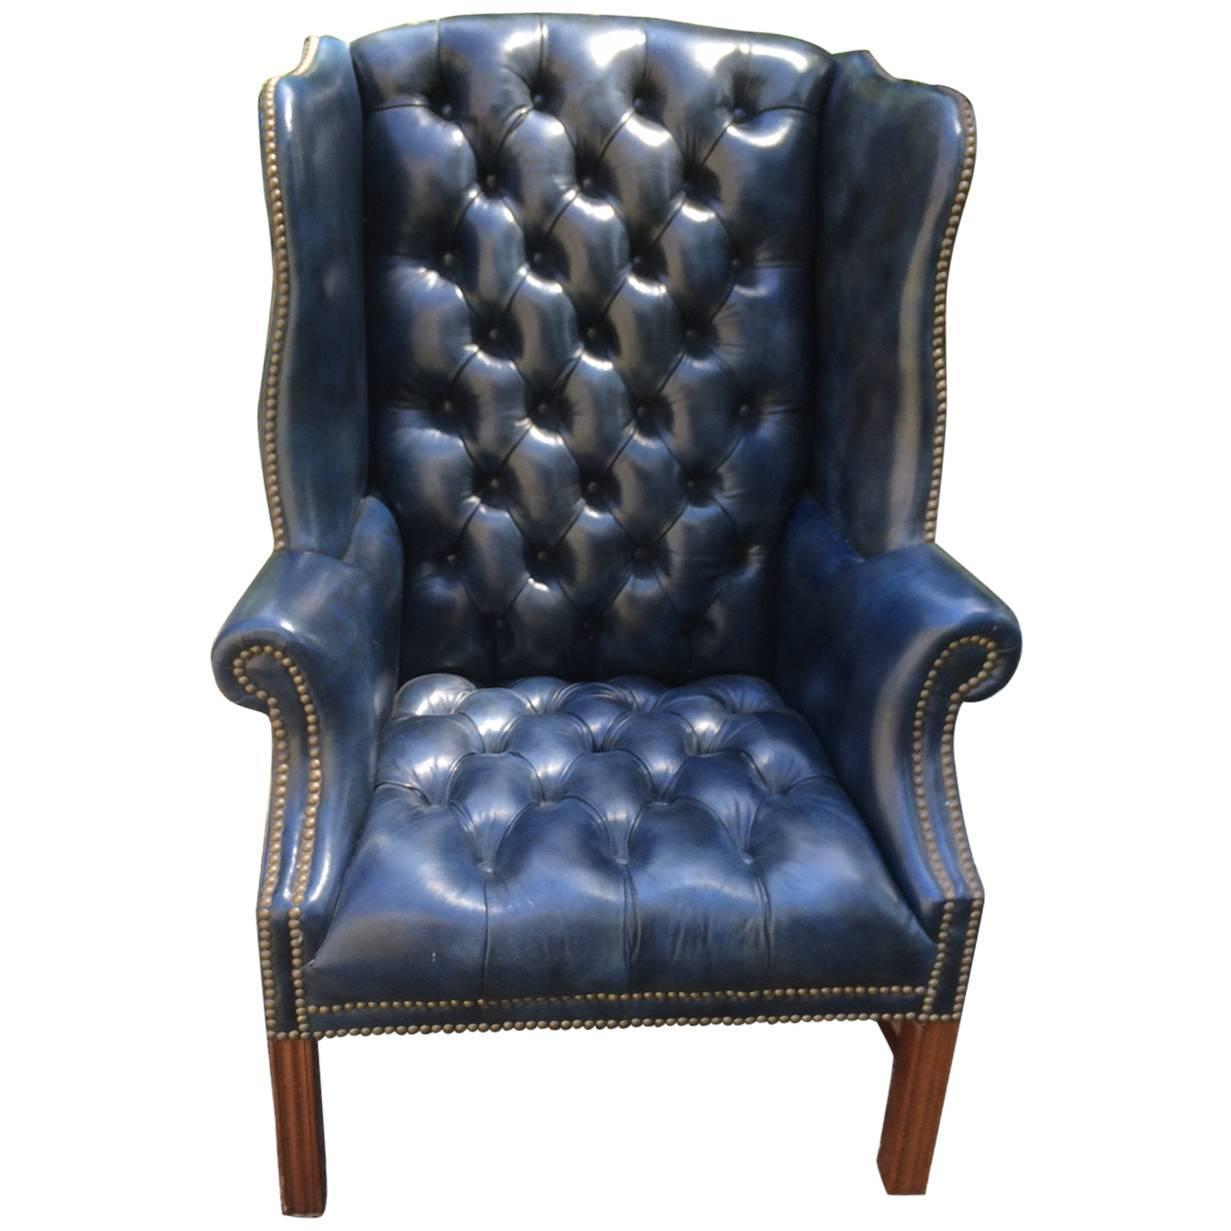 Blue Leather Club Chair Fabulous Navy Blue Leather Tufted Wing Chair For Sale At